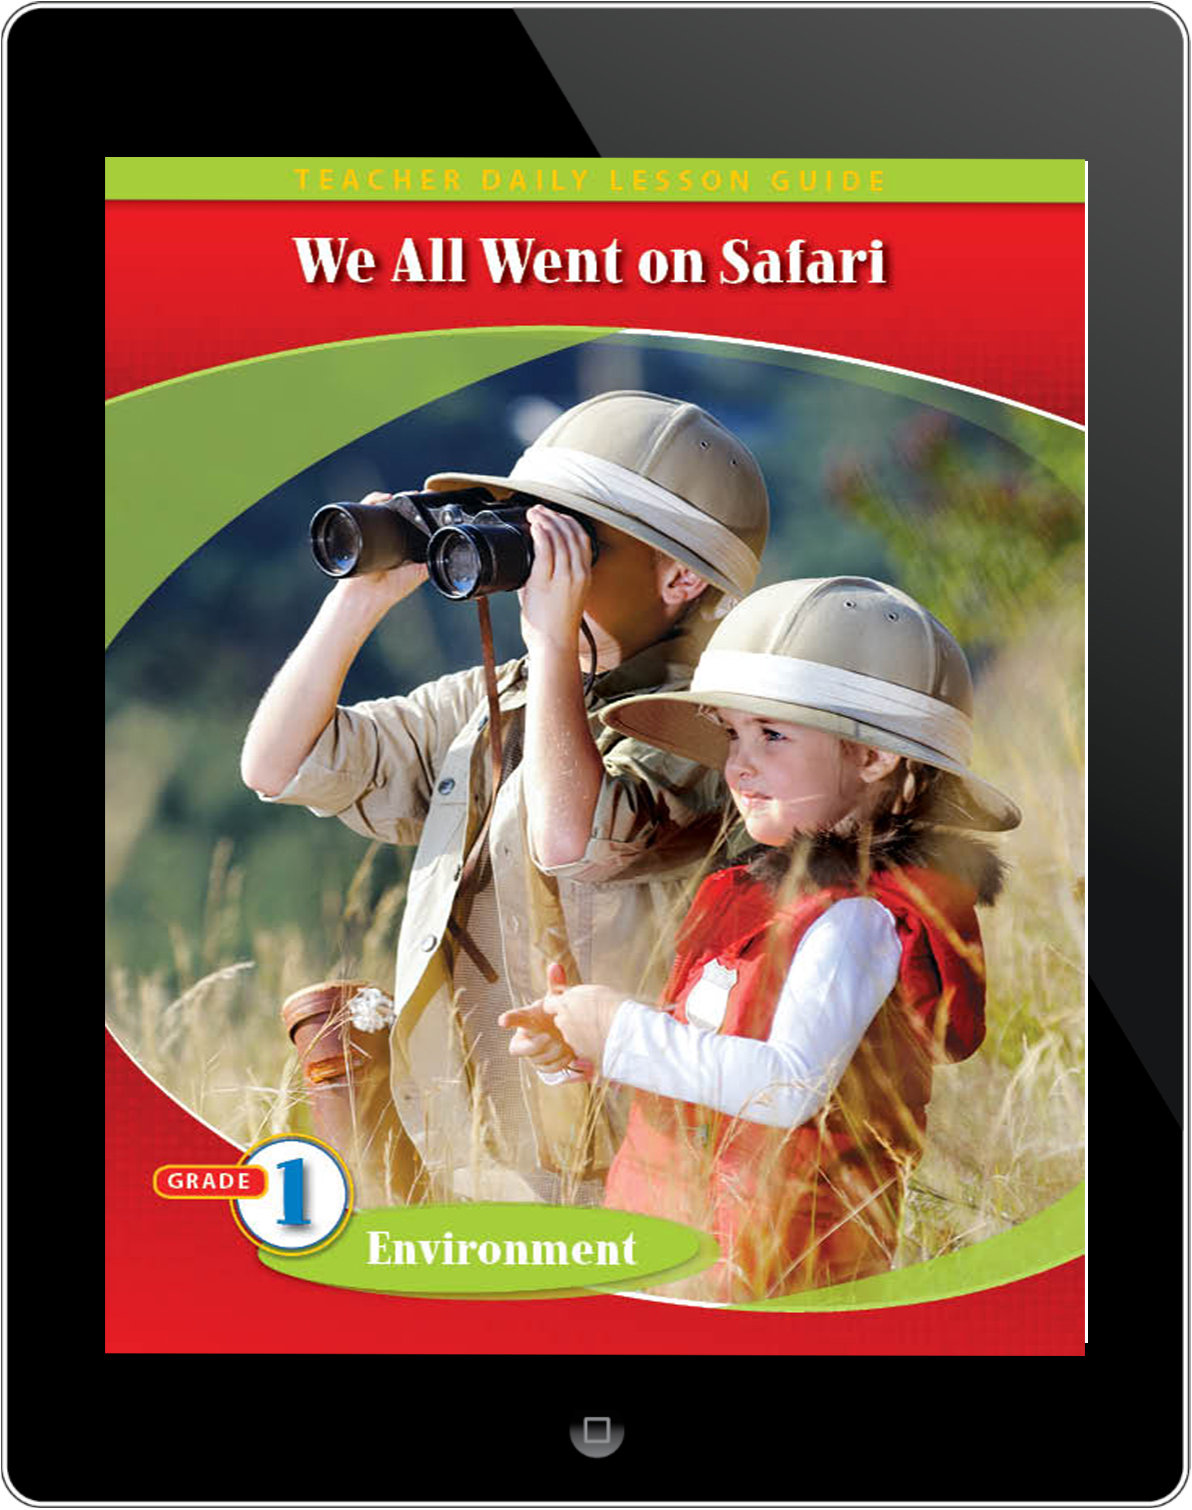 Pathways2.0 Grade 1 Environment Unit: We All Went on Safari: A Counting Journey through Tanzania Daily Lesson Guide 5 Year License